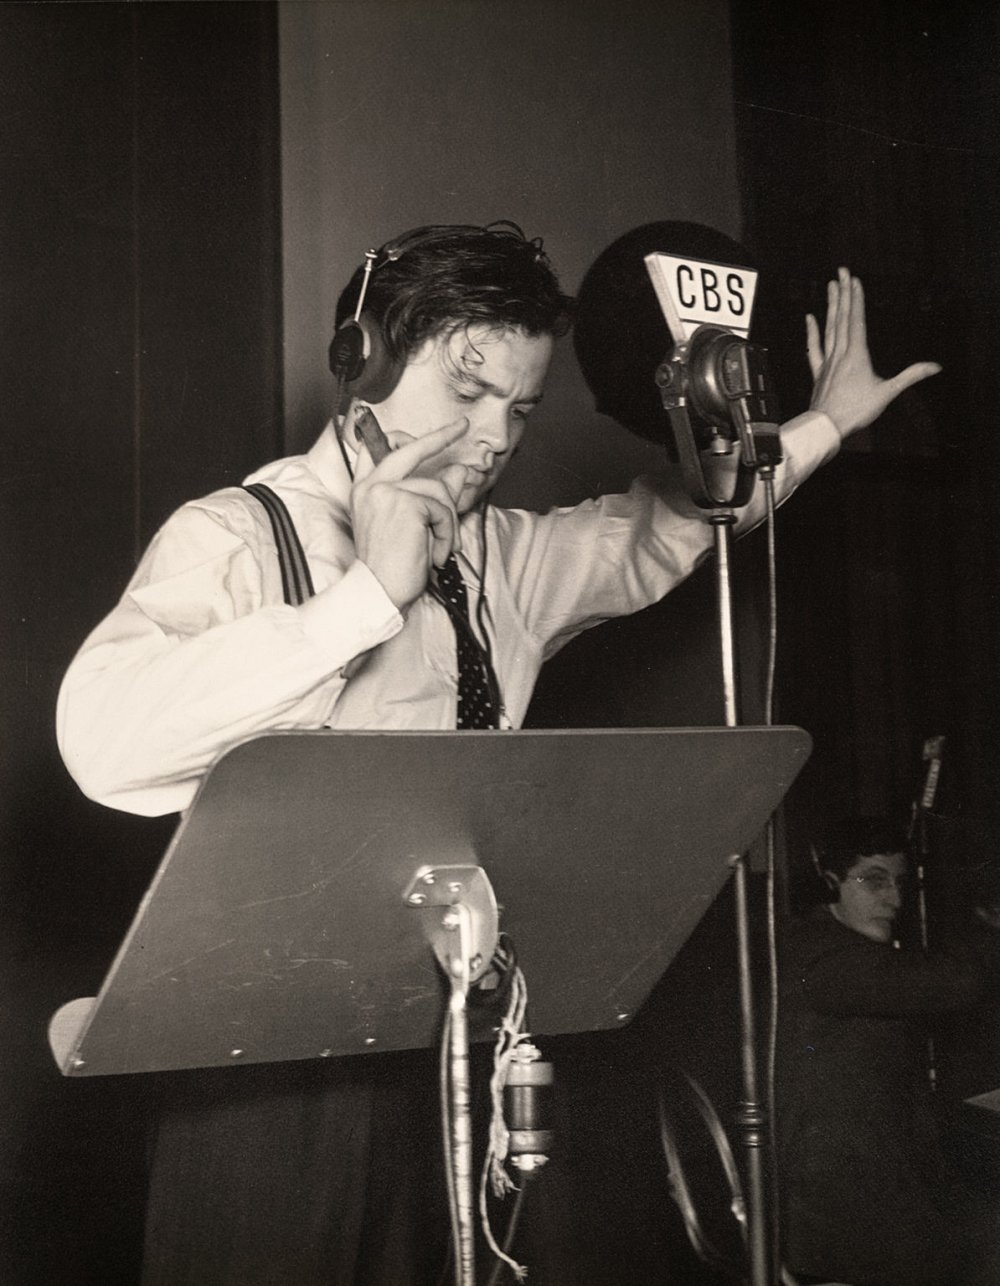 Welles at The War of the Worlds broadcast in 1938